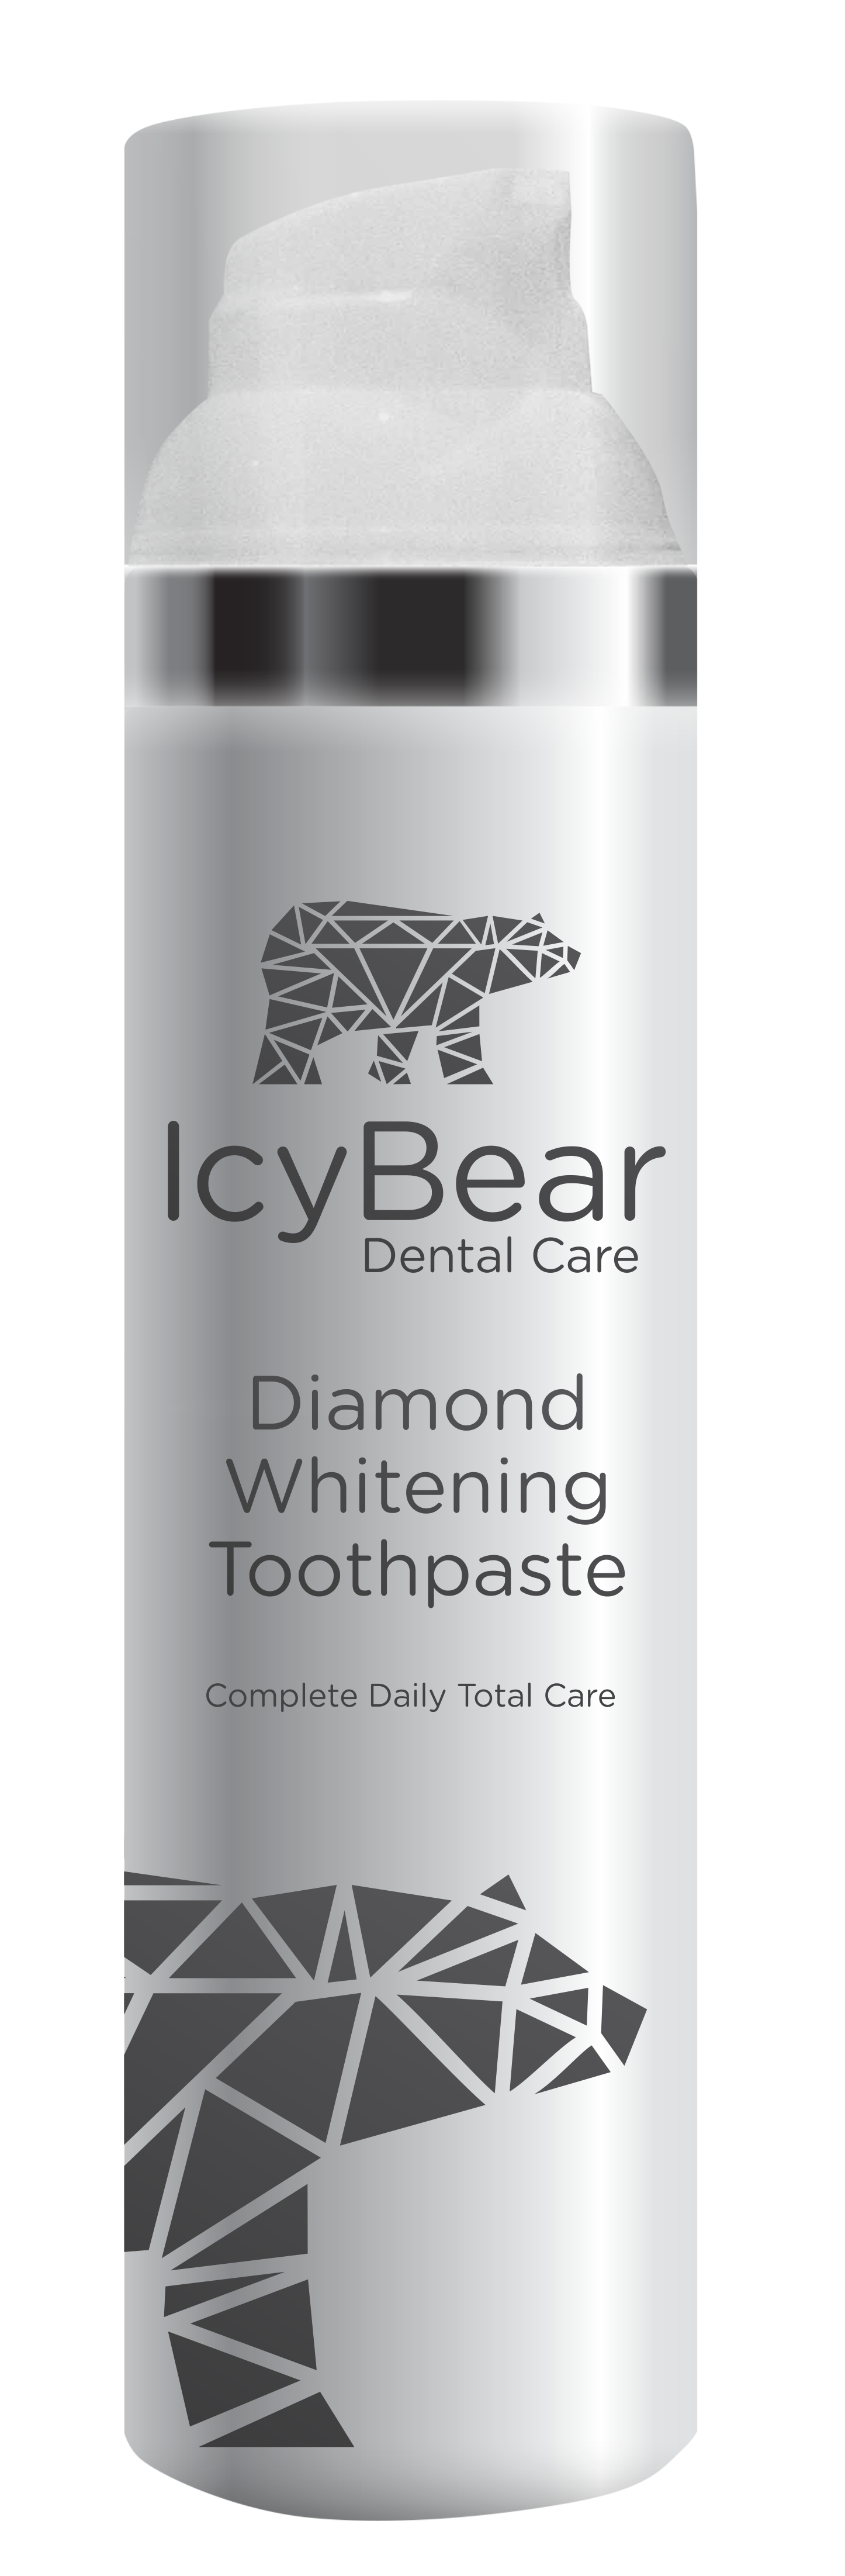 ICY Bear Dental Care - Bottle